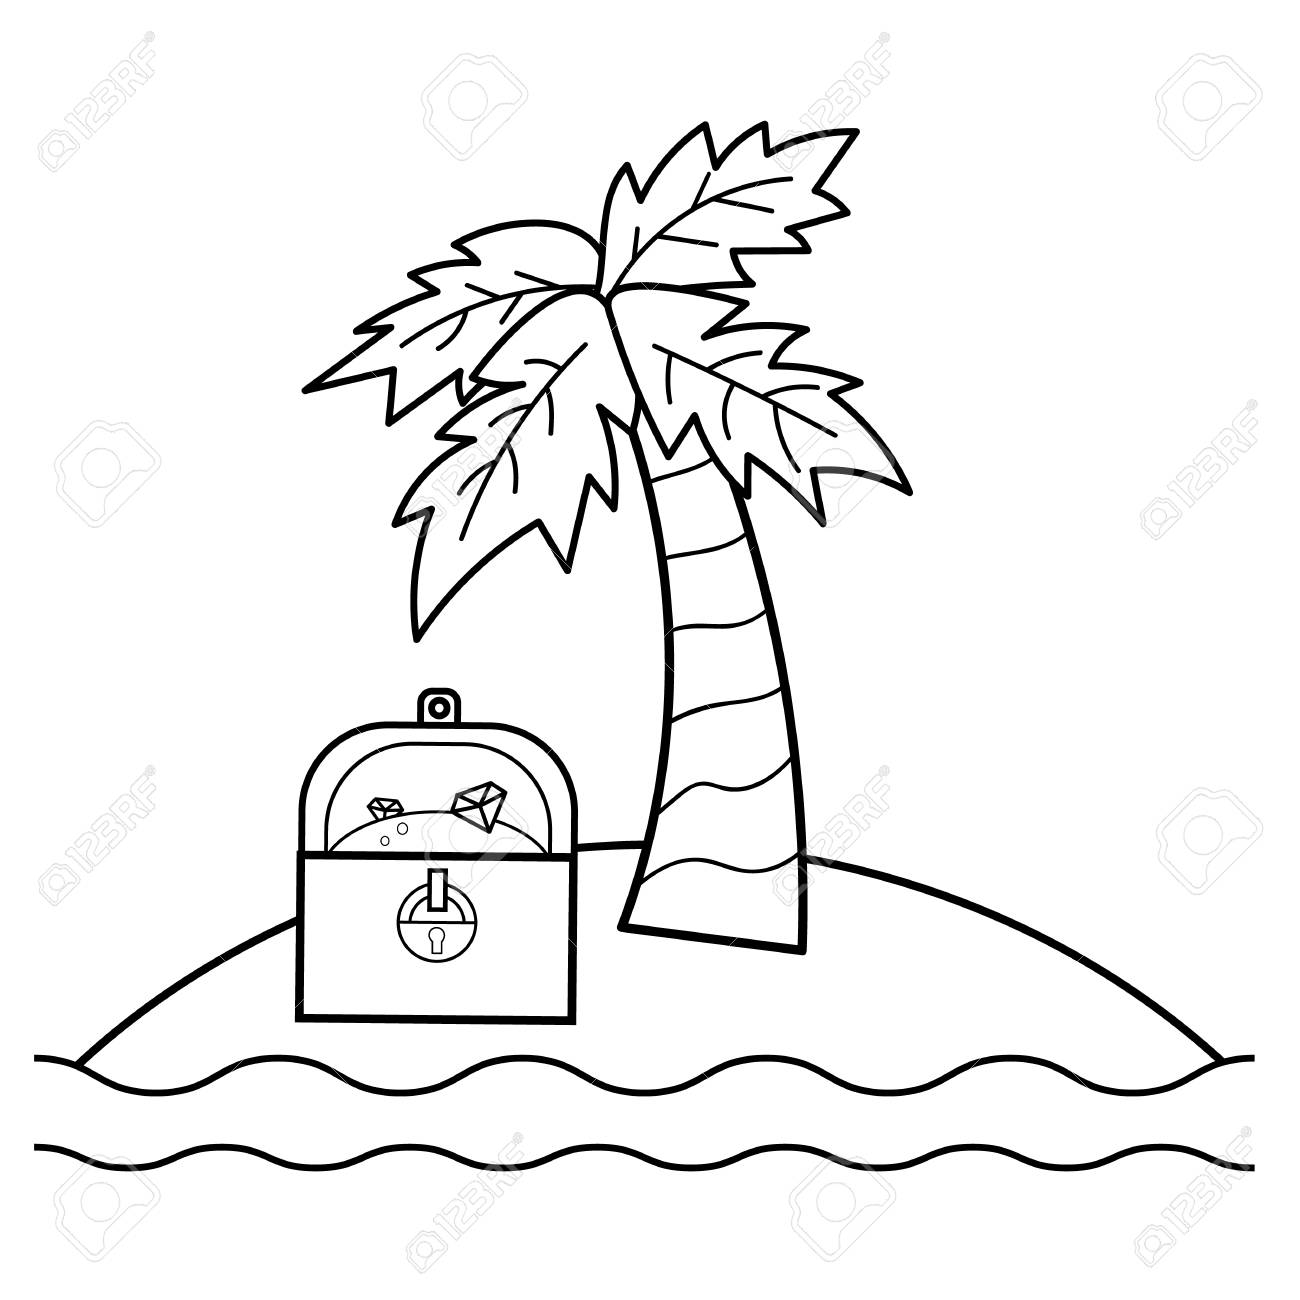 Treasure Island coloring pages | Jim Hawkins runs away from the ... | 1300x1300